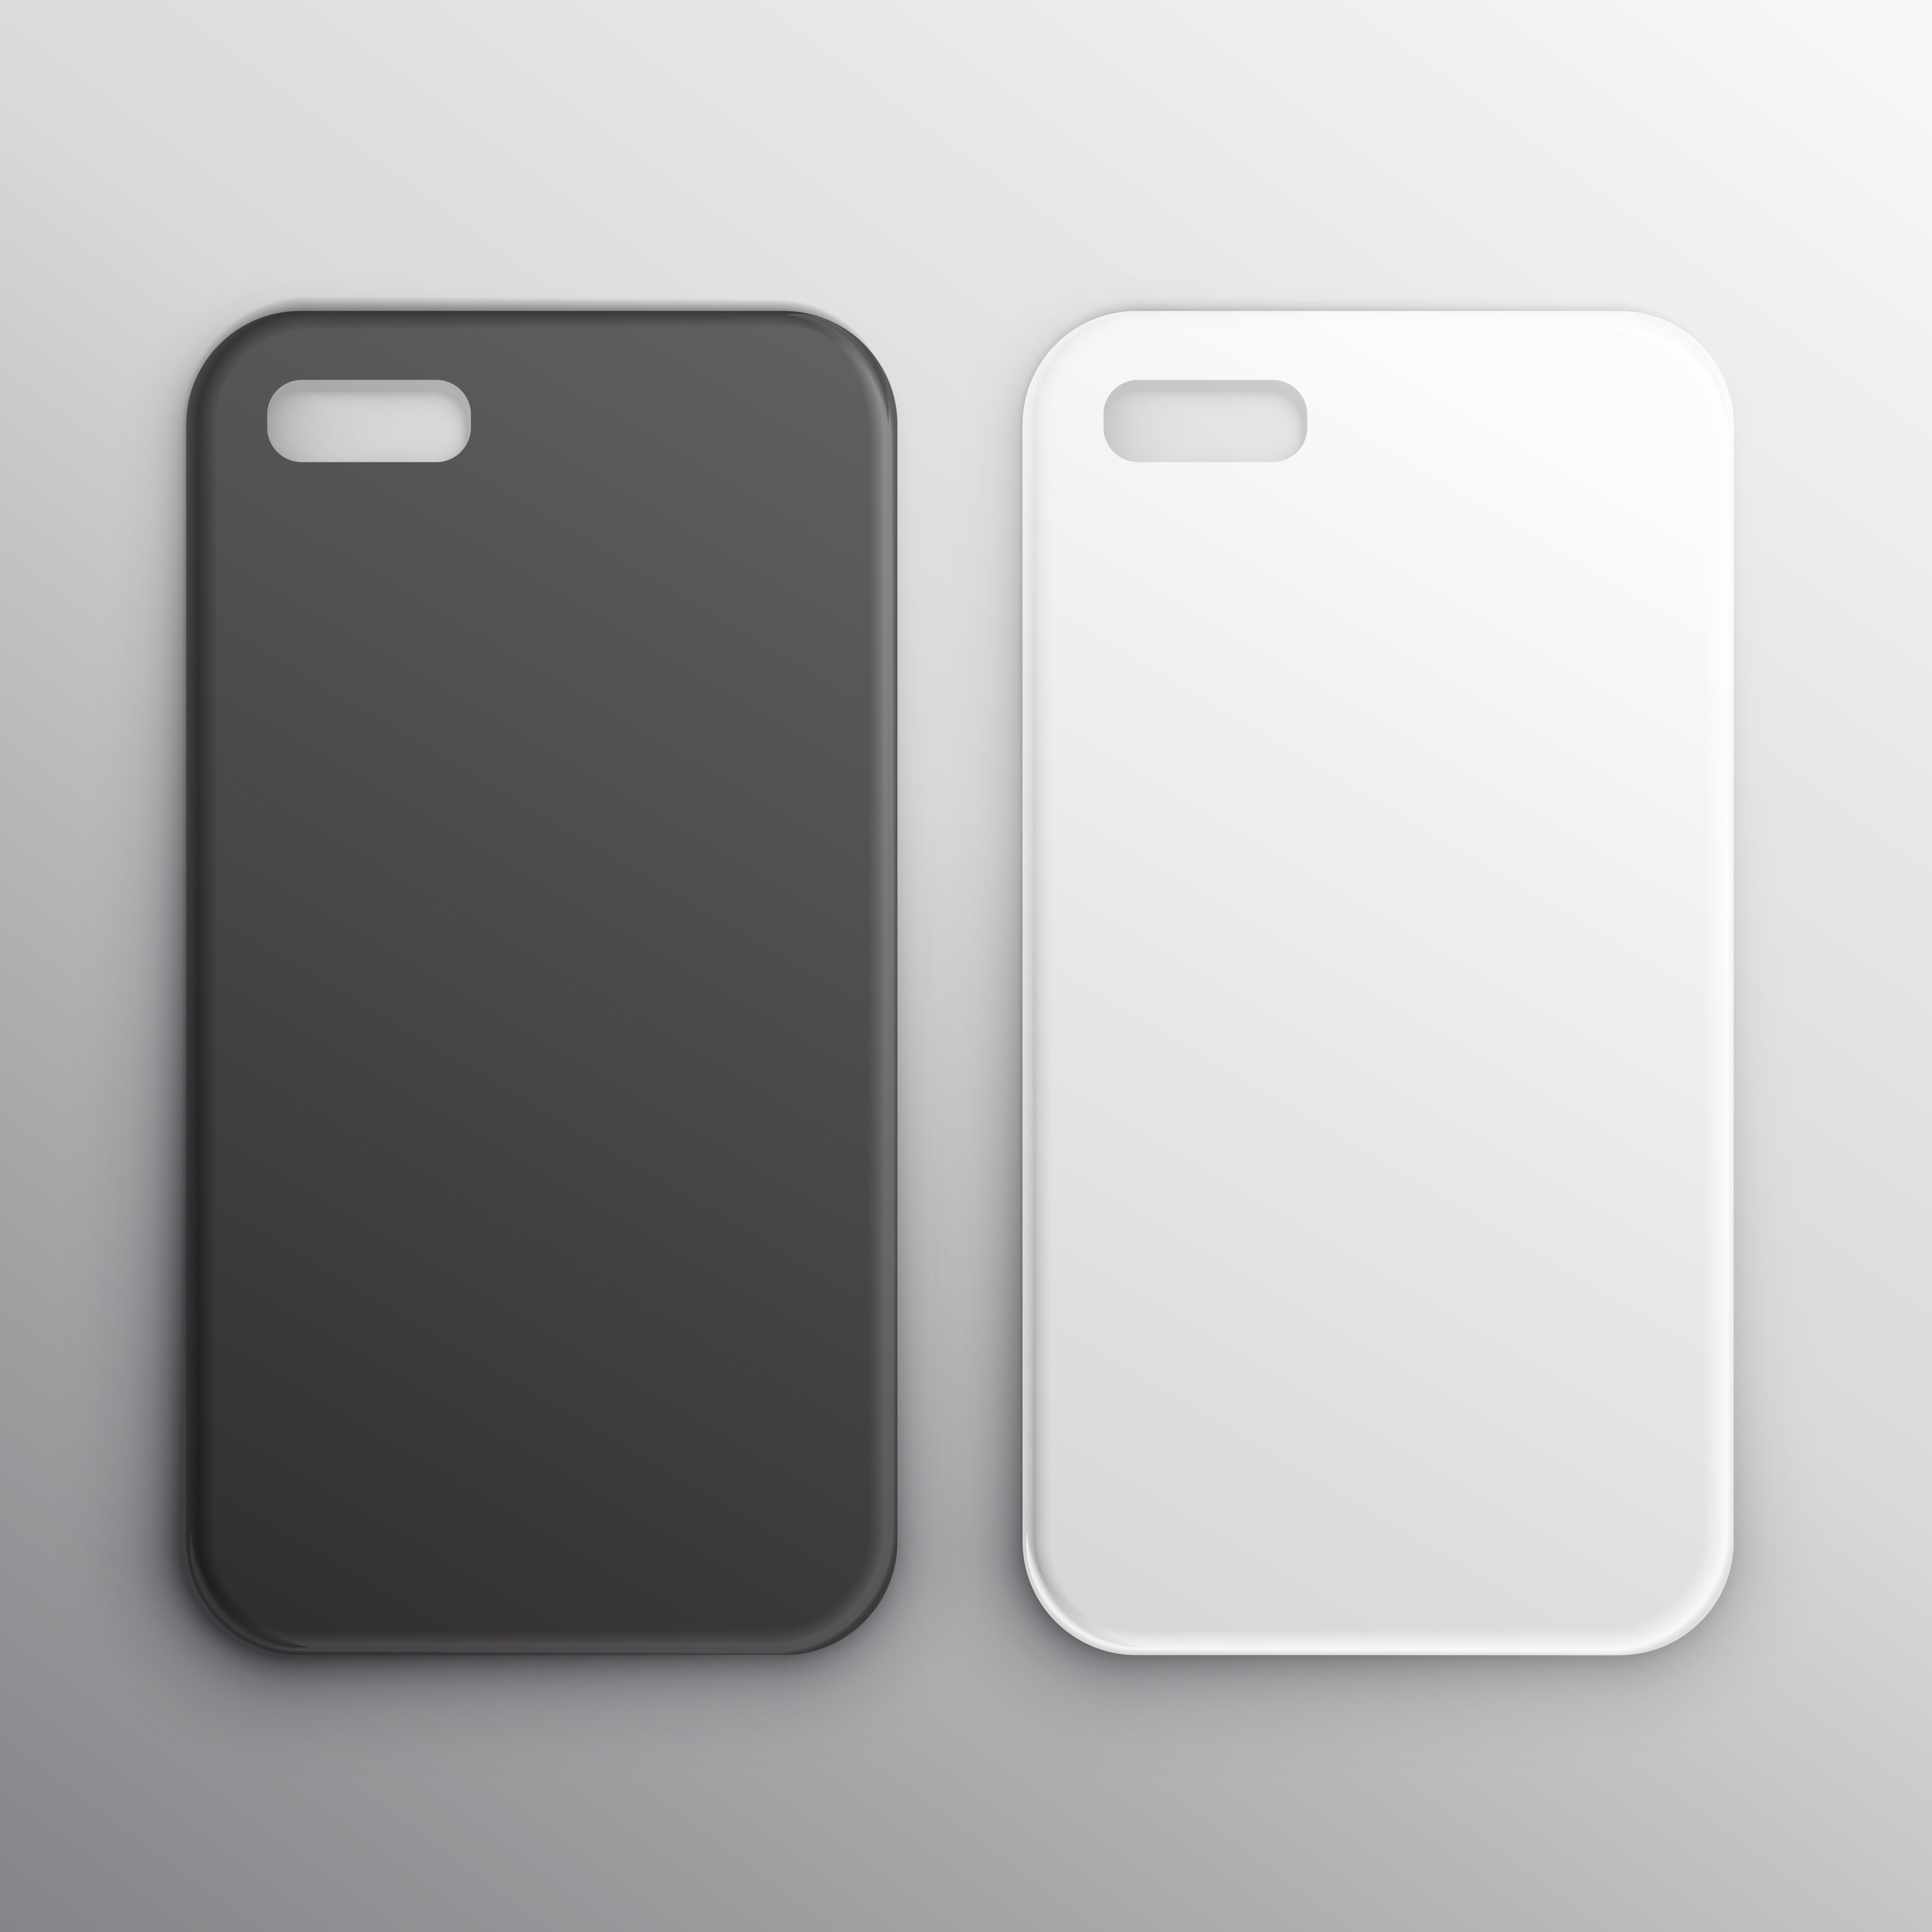 Smartphone Cases Case Mock Up For Smartphone 3704 Free Downloads